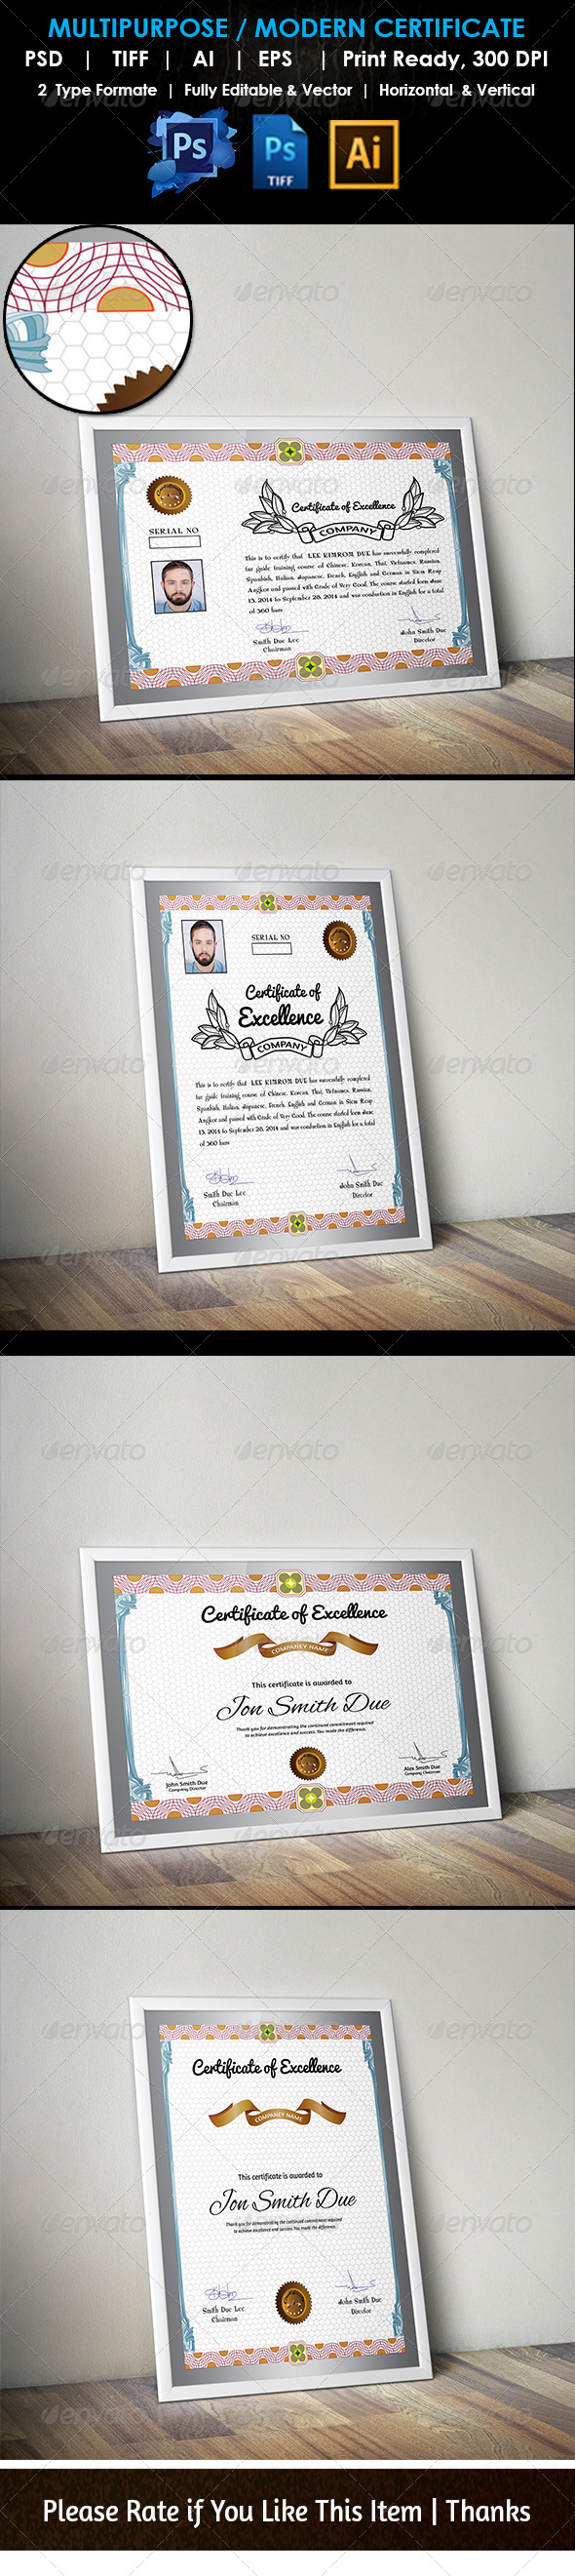 GraphicRiver Multipurpose Training Unique Certificate PSD AIl 7423929